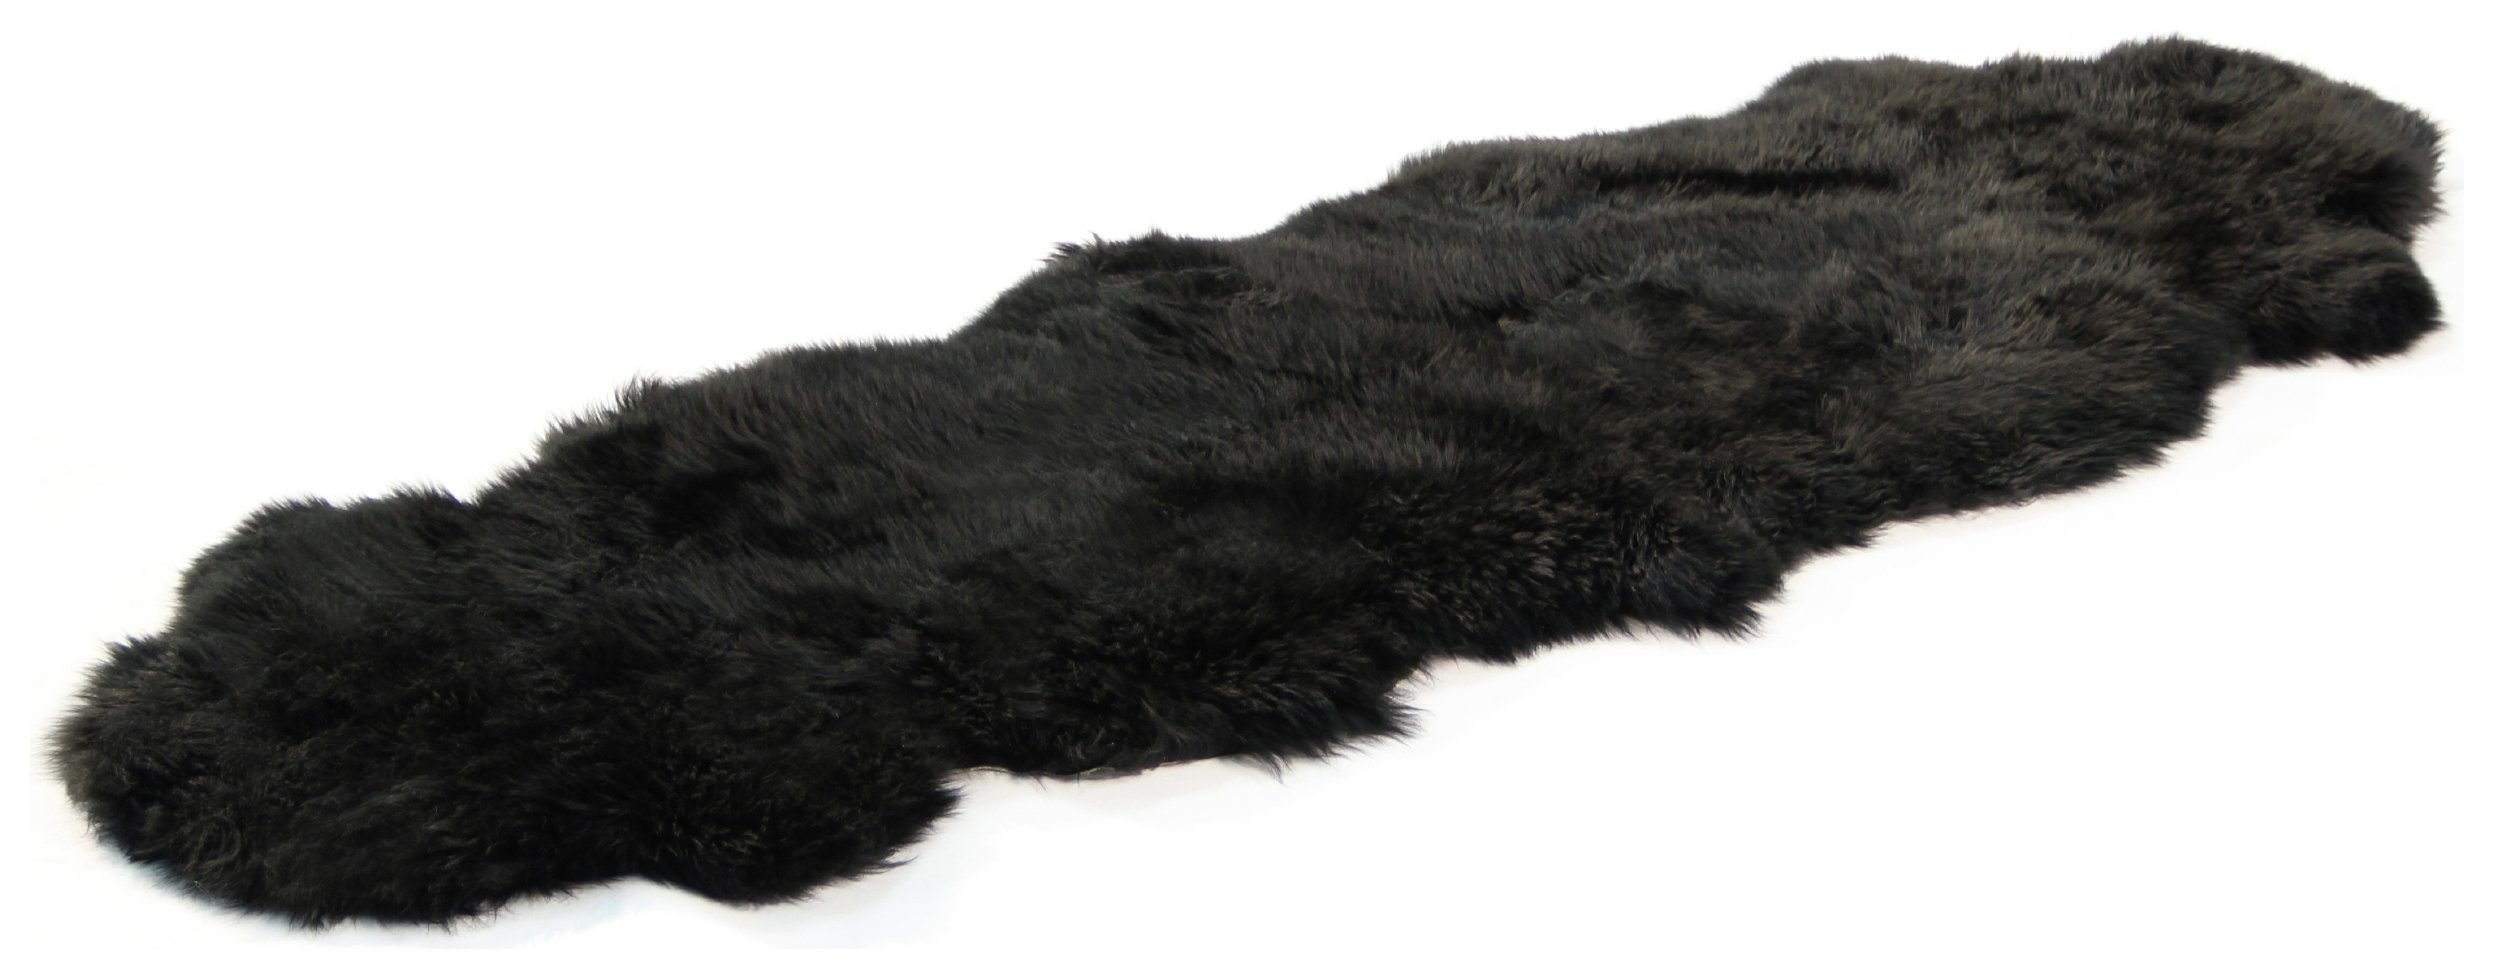 Image of Bowron Sheepskin Longwool Rug 180 x 60cm - Black.